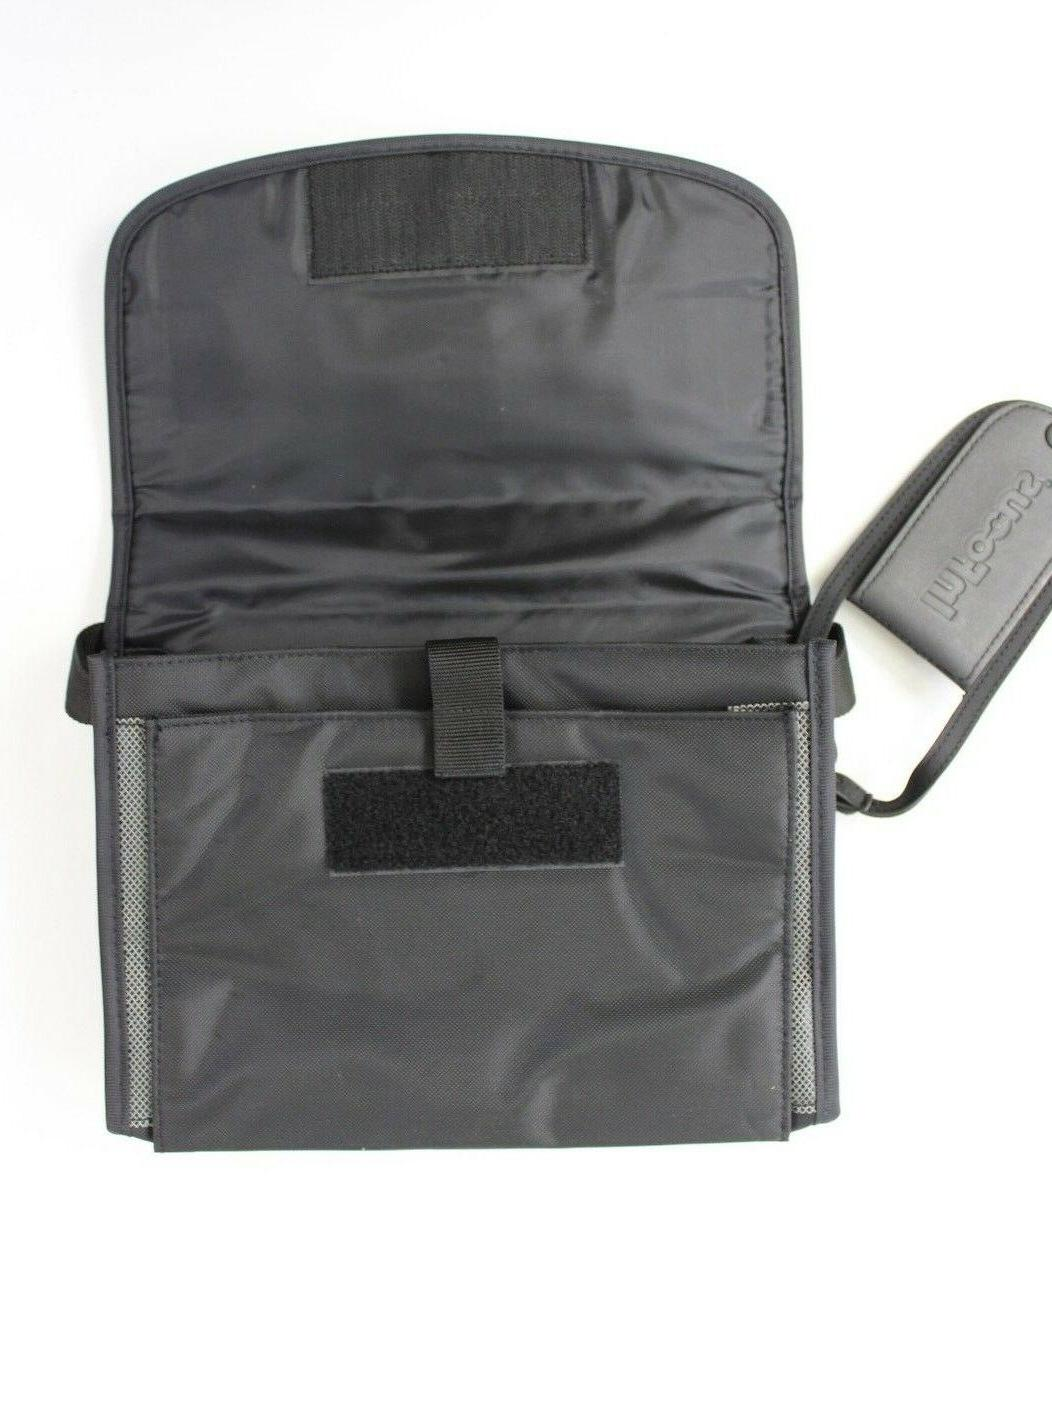 InFocus CA-SOFTCASE-01 Black Polyester Carry Case BRAND NEW